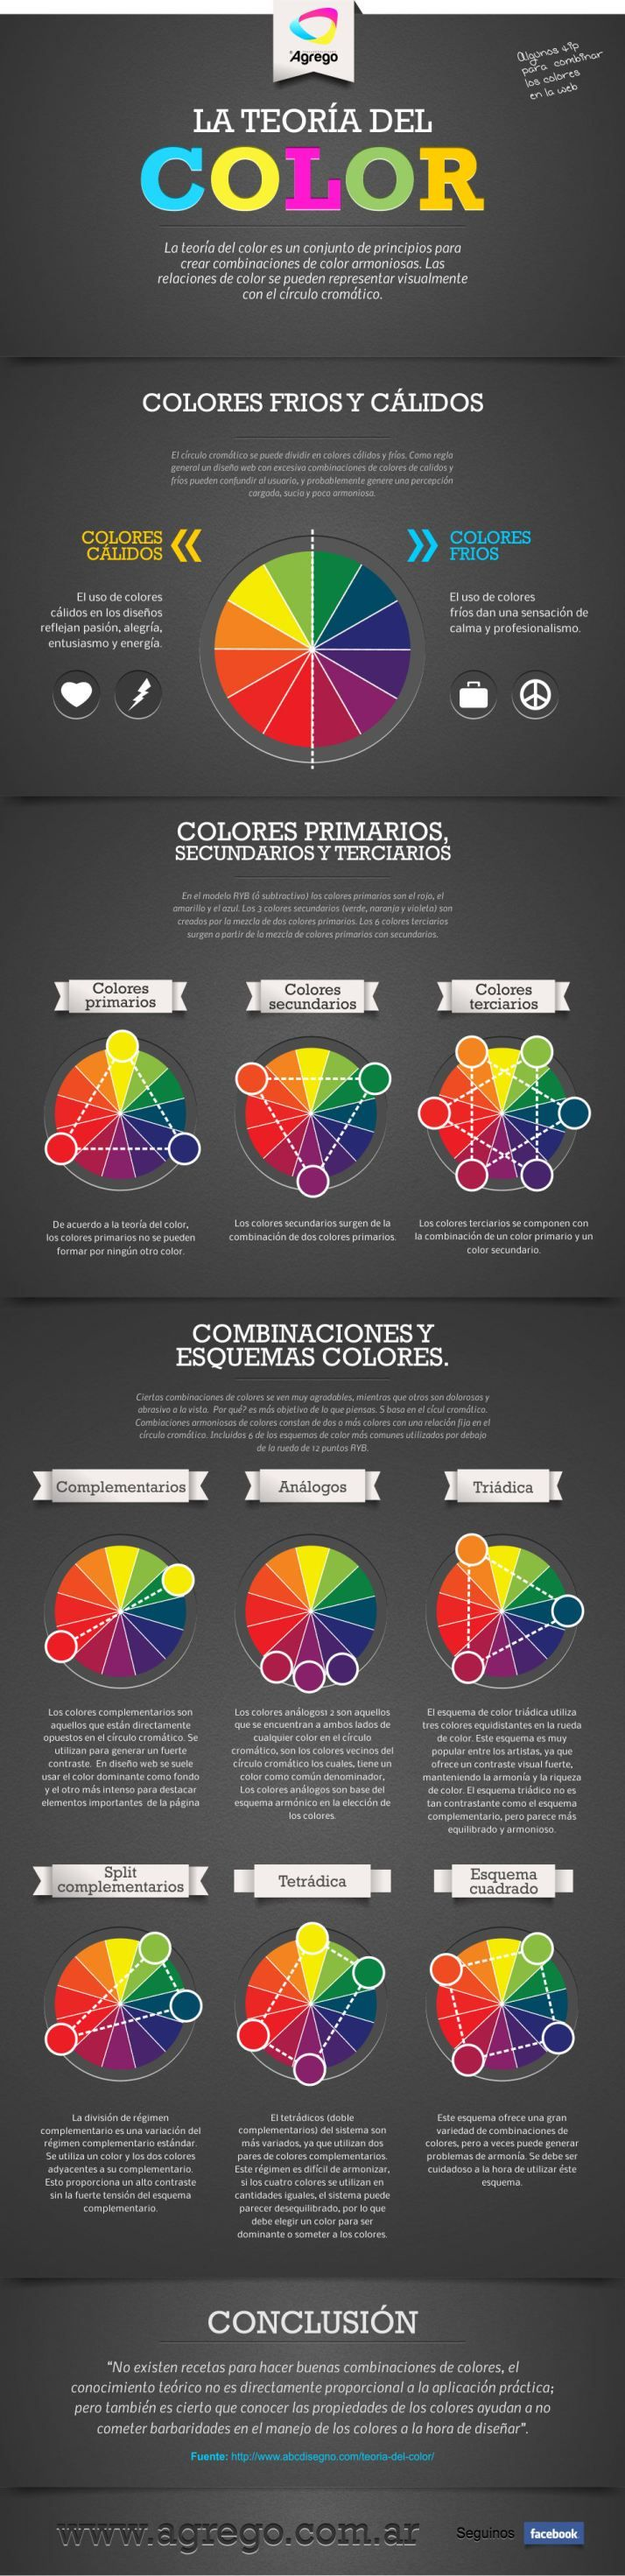 La teoría del color